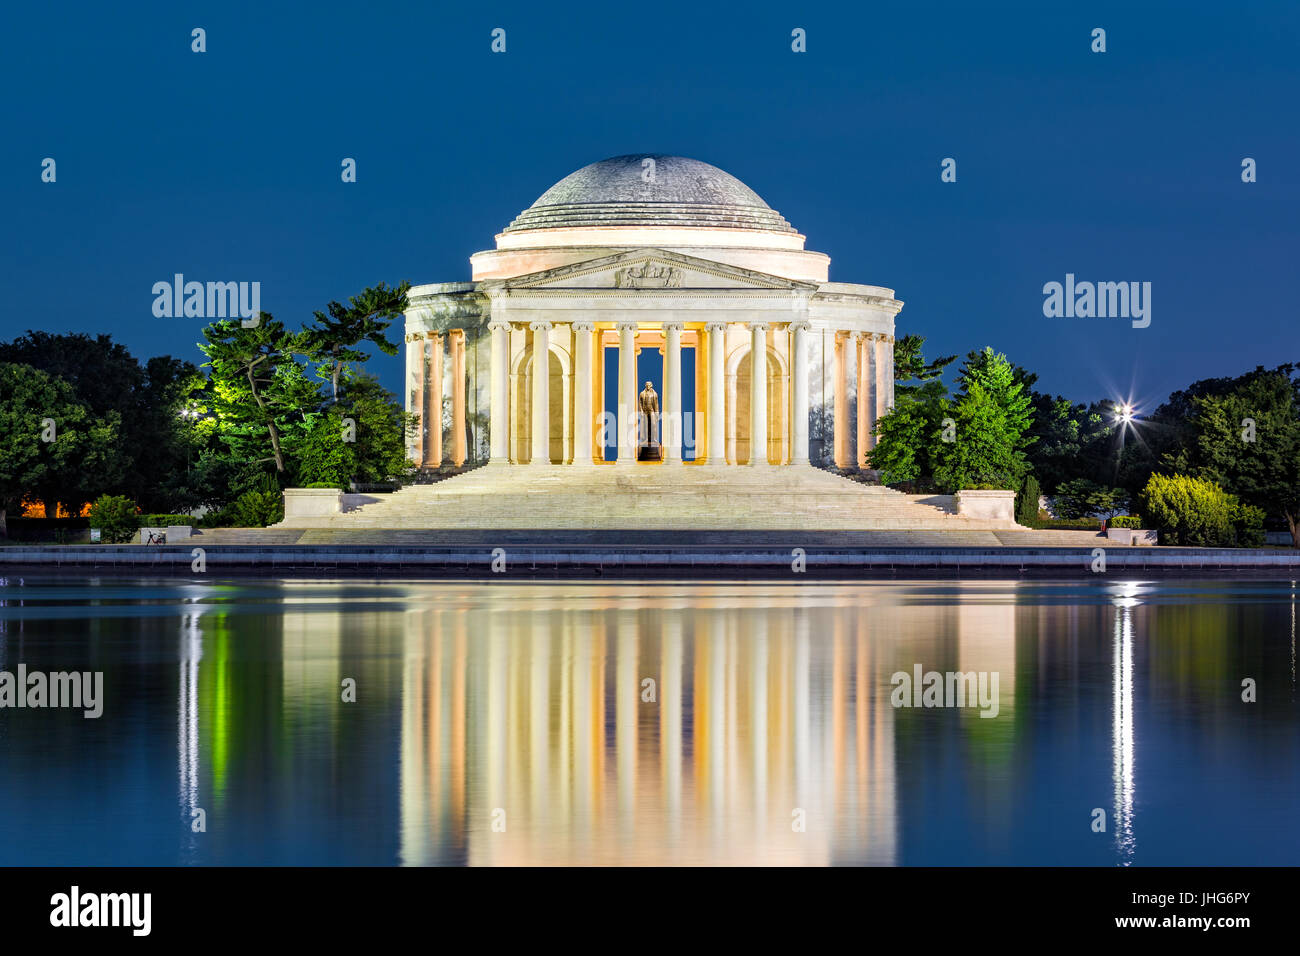 Jefferson Memorial à Washington DC. Le Jefferson Memorial est un bâtiment public géré par le Photo Stock